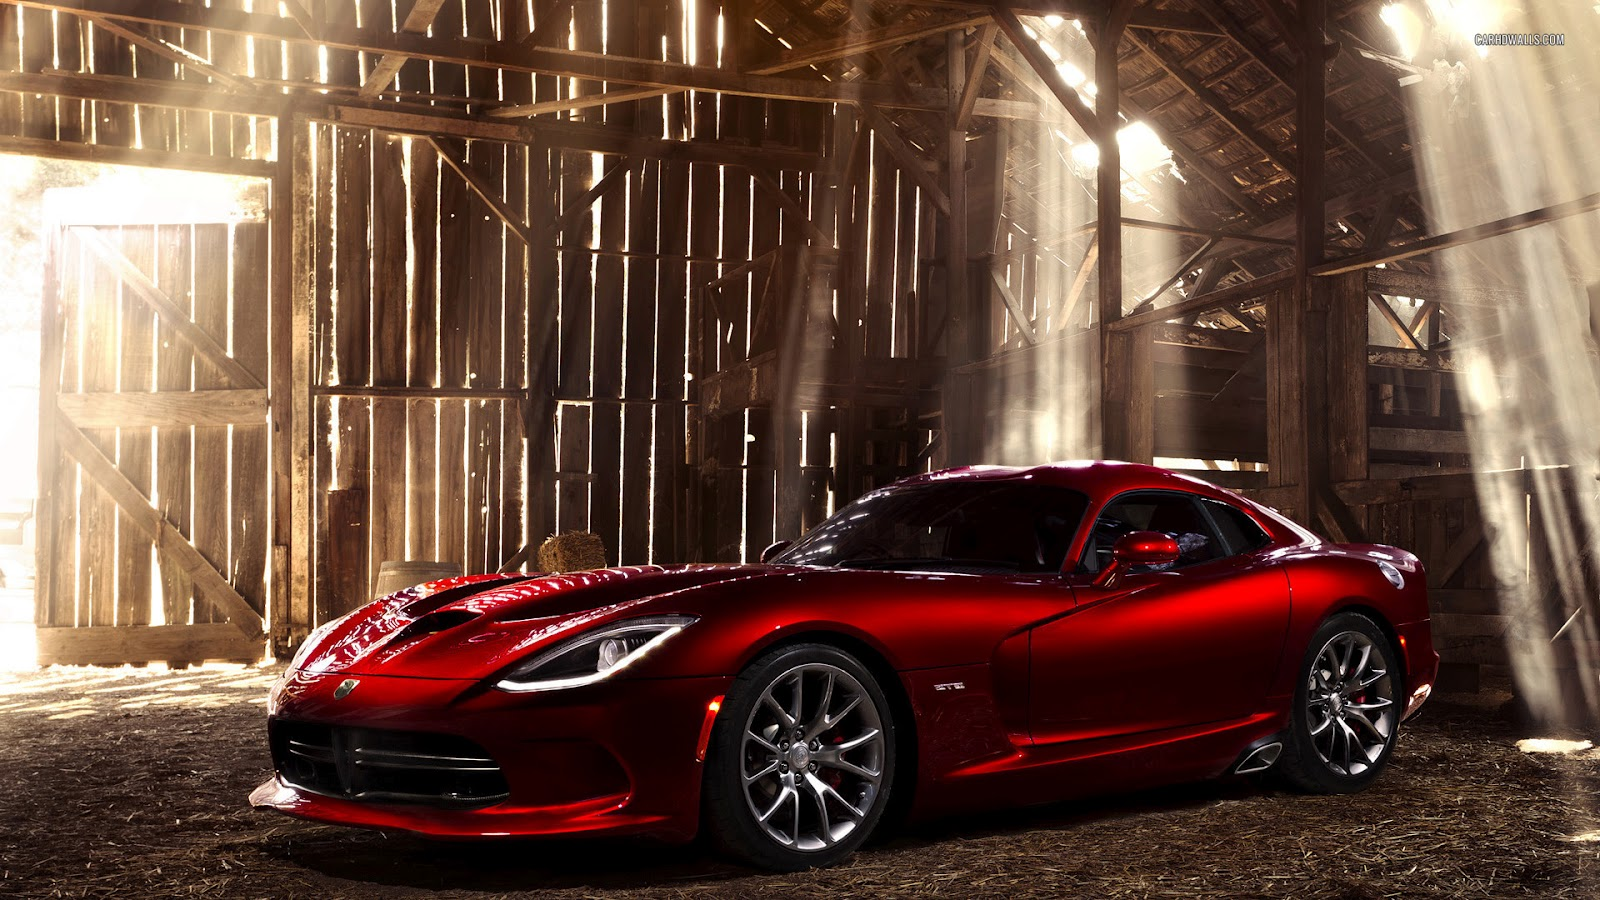 free cars hd: dodge viper srt hd wallpapers